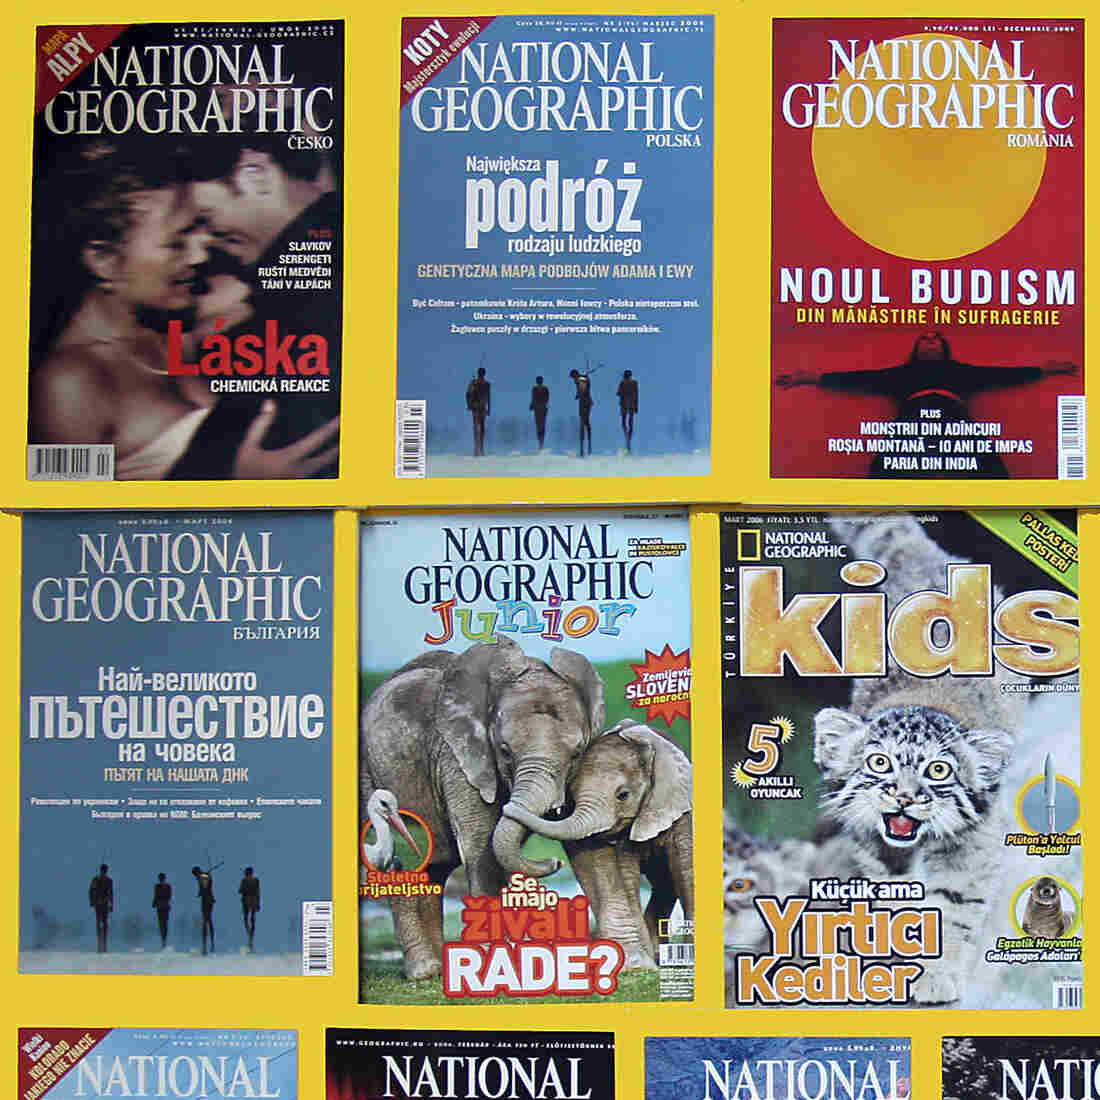 National Geographic Reshapes Itself In $725 Million Deal With 21st Century Fox